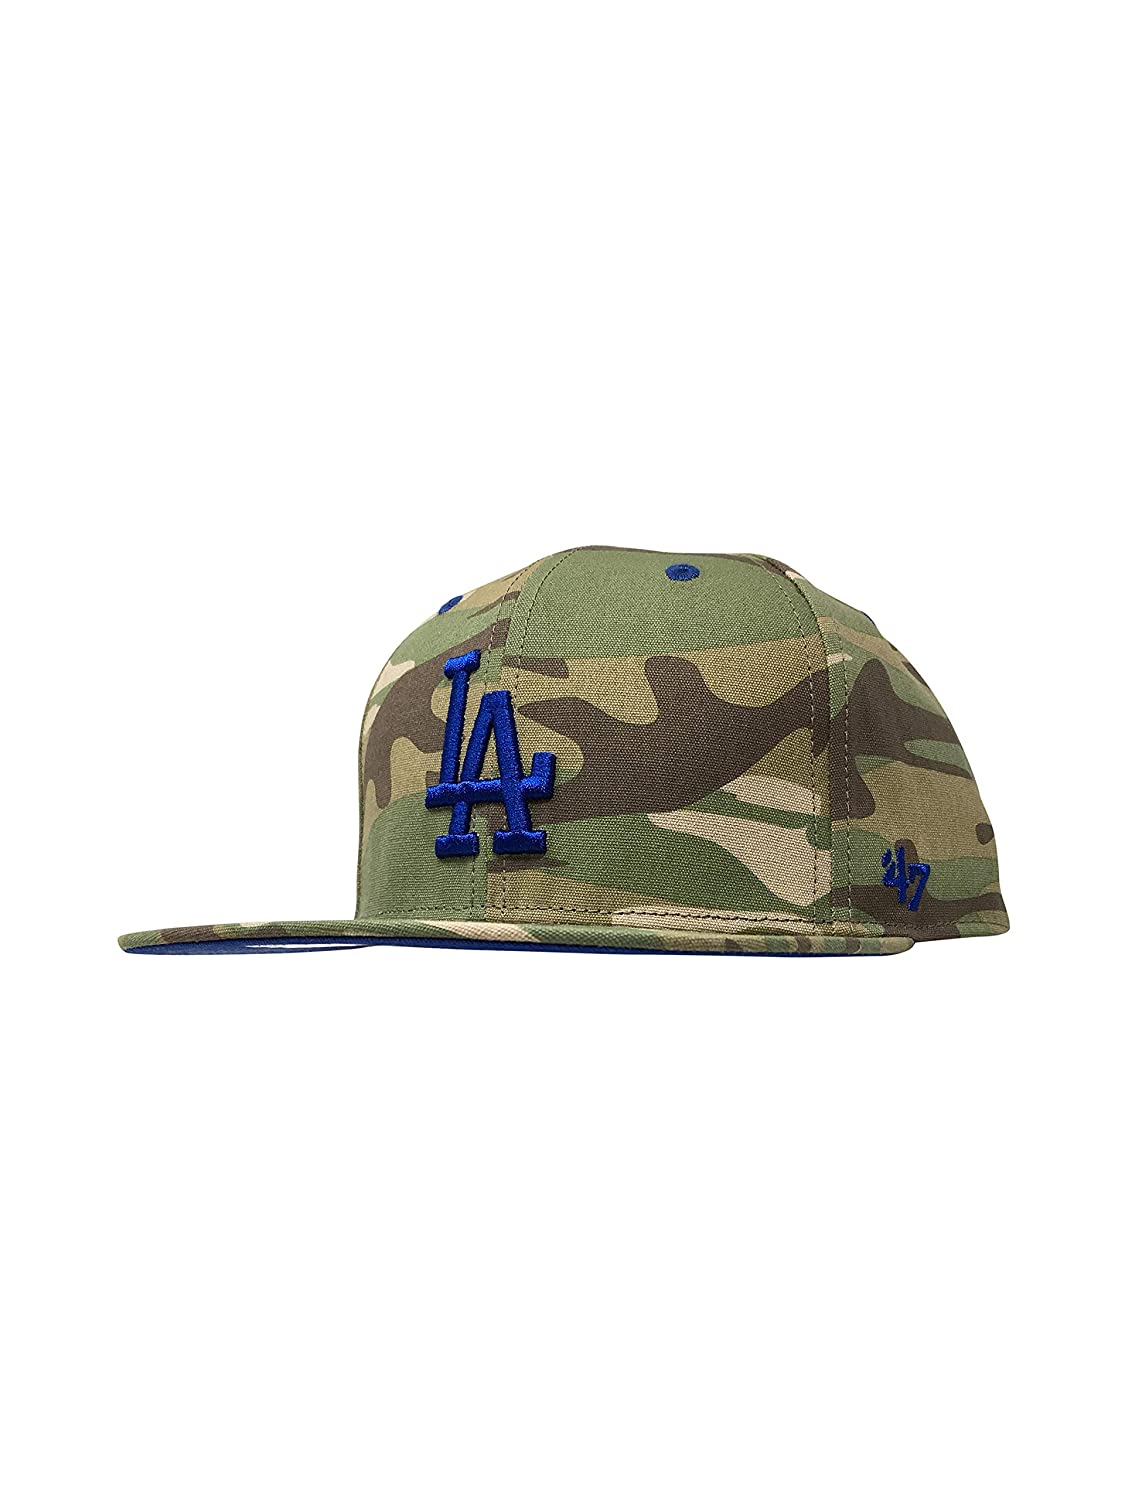 47 Los Angeles Dodgers Franchise One Size Hat MLB Flat Bill Cap Leather Strapback